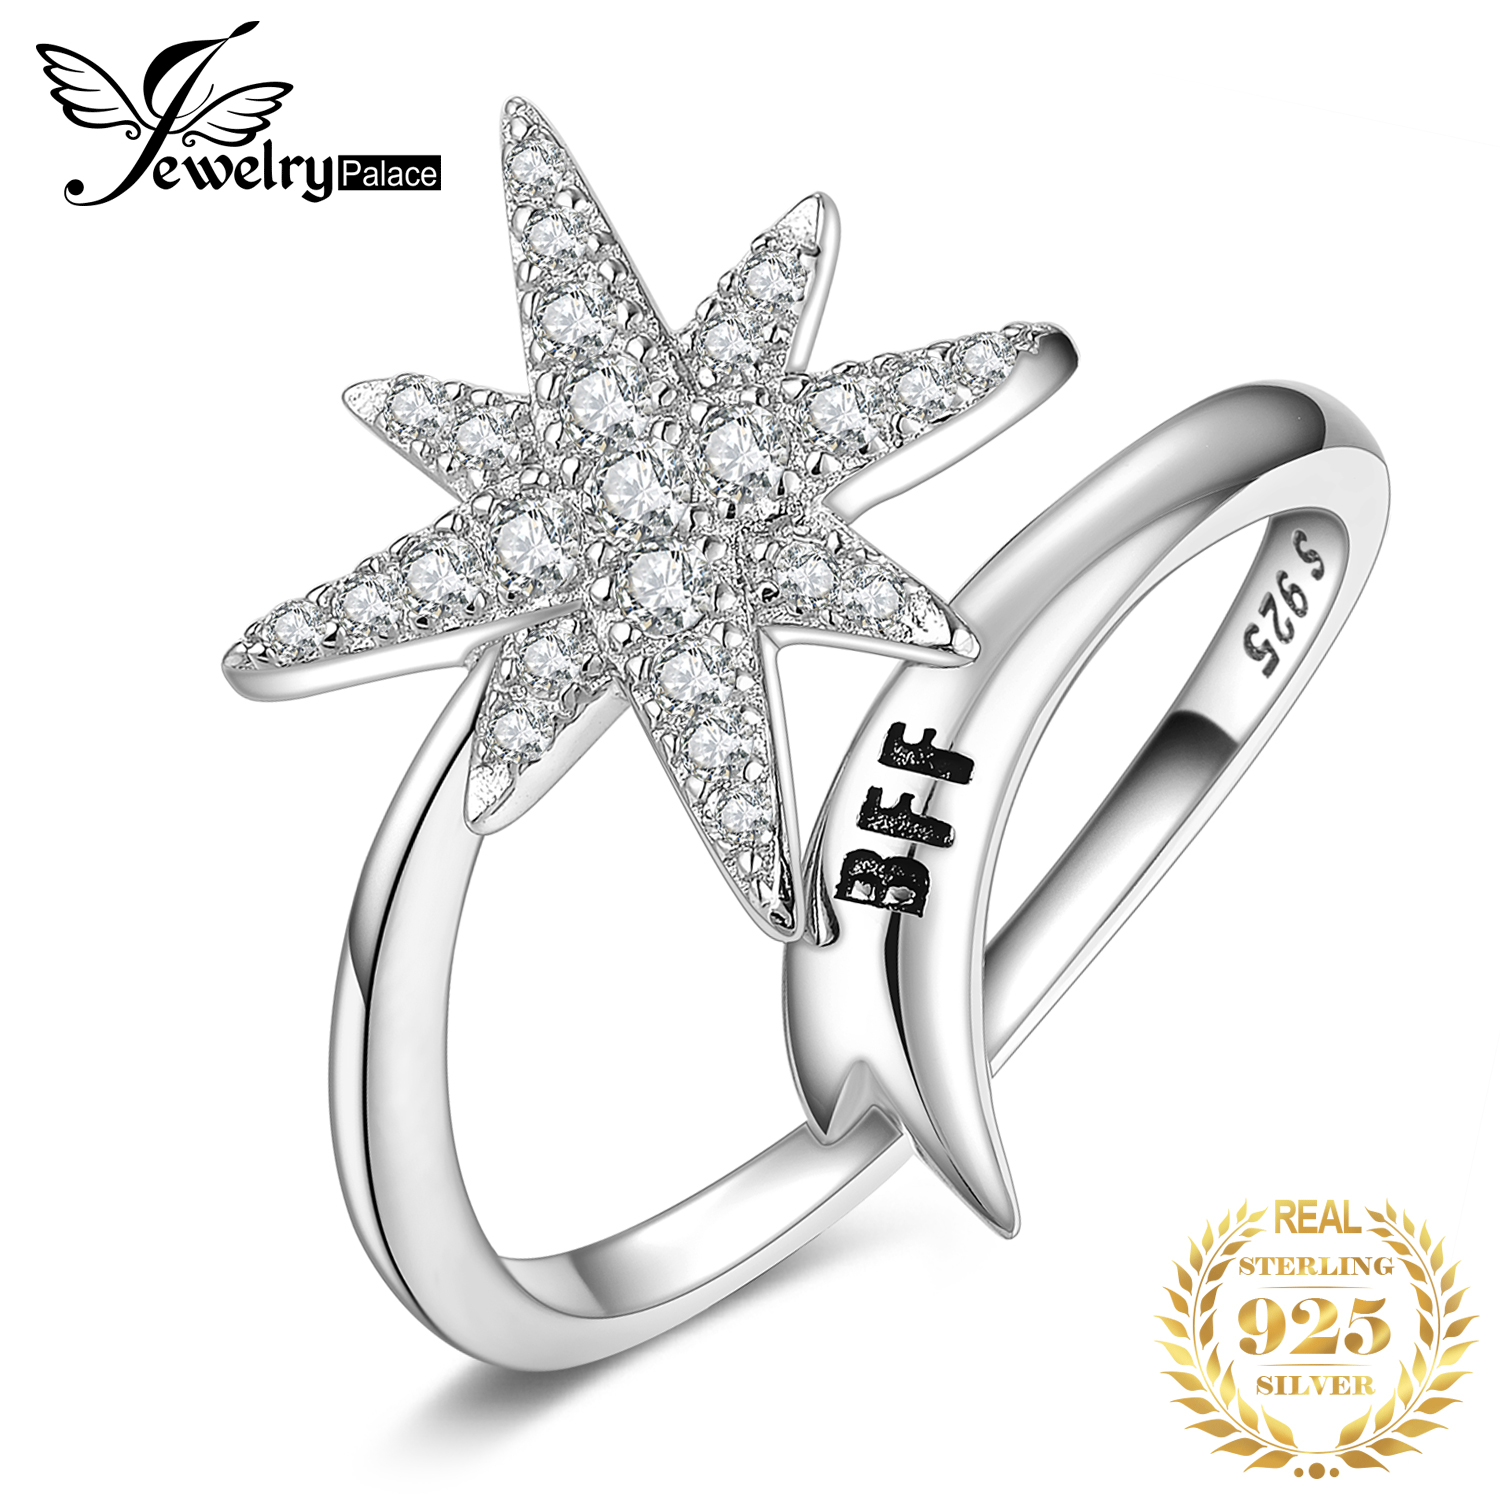 JewelryPalace Engraved  BFF Snowflake Cocktail Ring 925 Sterling Silver Rings For Women Party Stackable Ring Silver 925 Jewelry